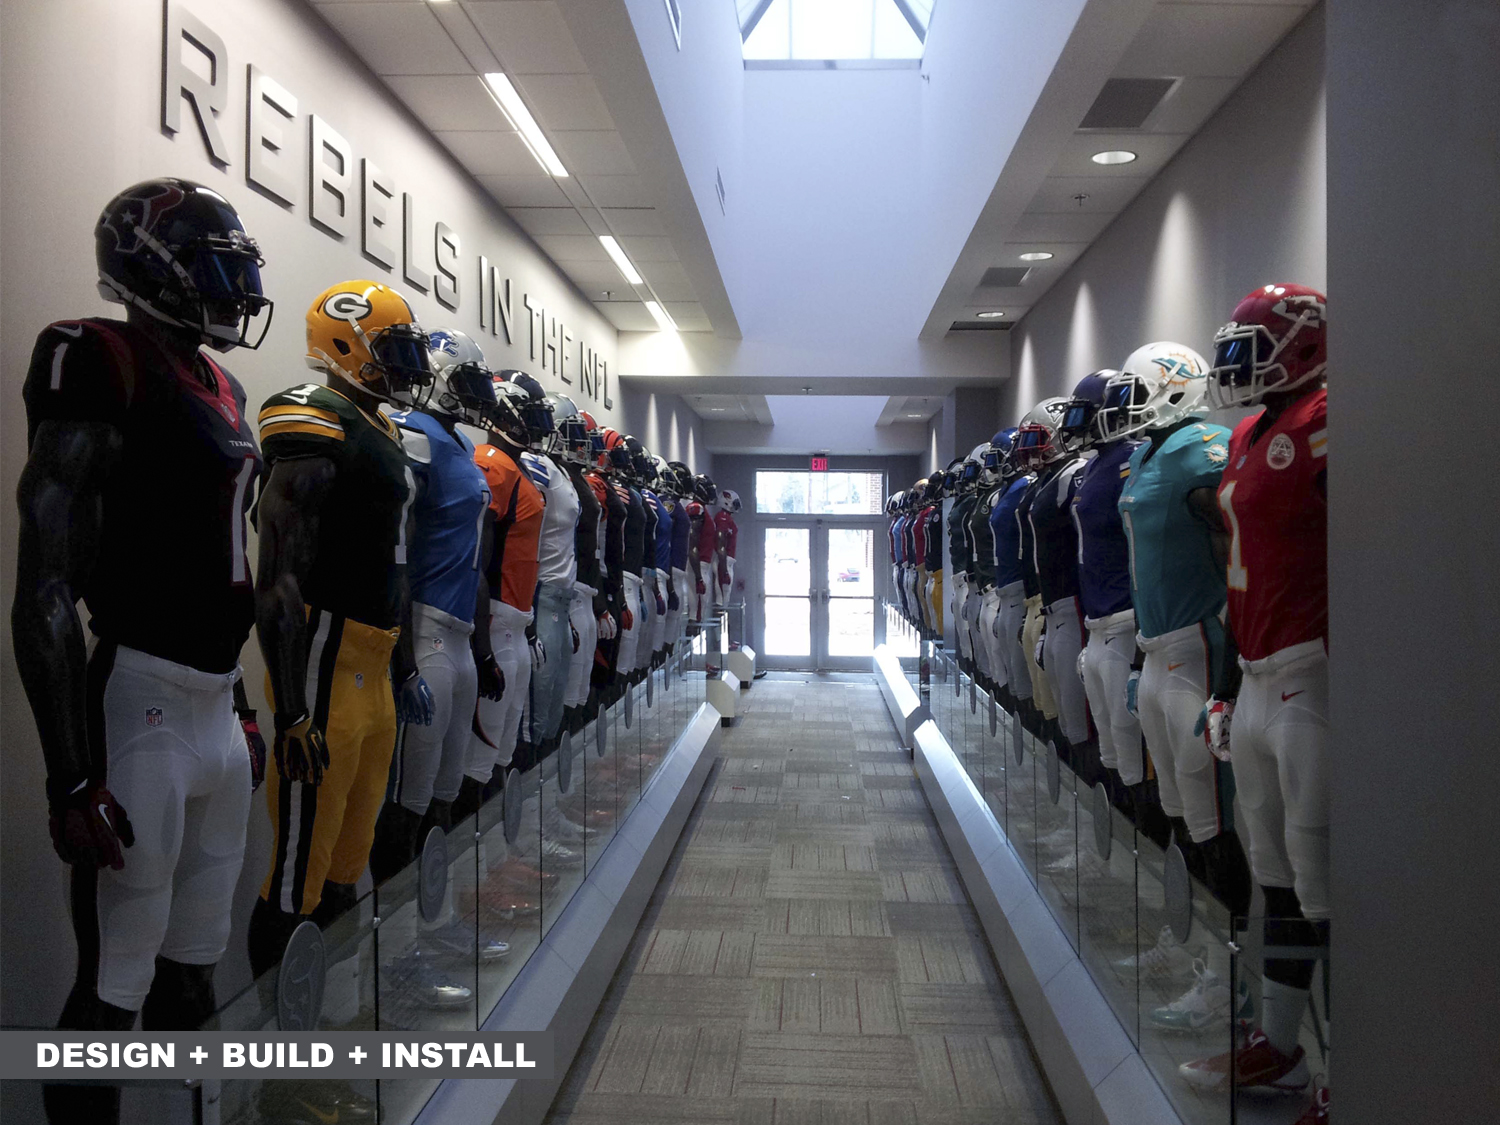 University of Mississippi – Olivia and Archie Manning Performance Center